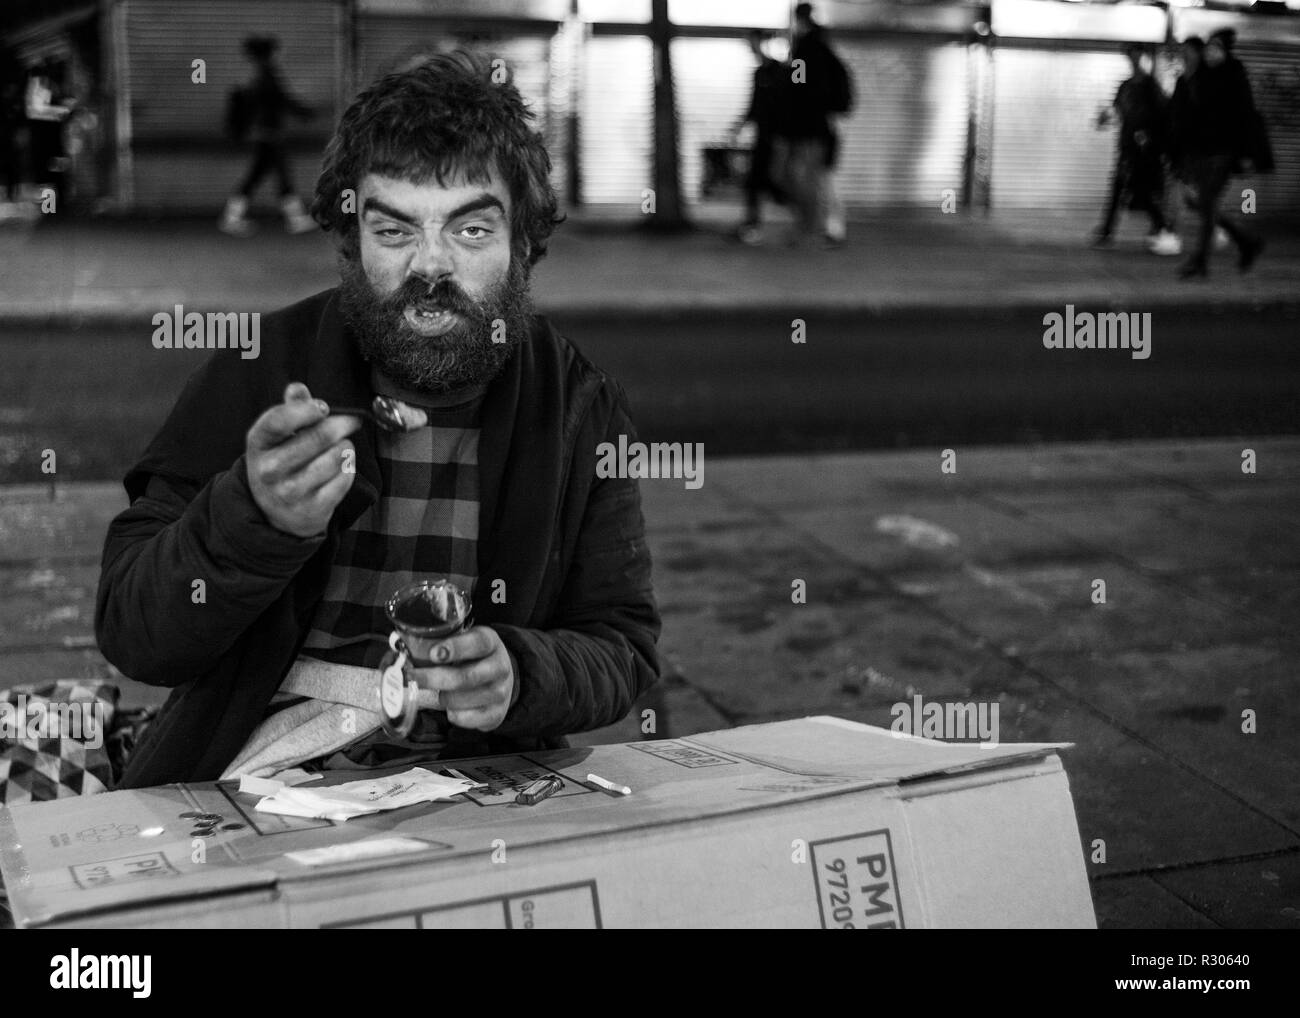 homeless man sitting on London street eating of a cardboard box - Stock Image